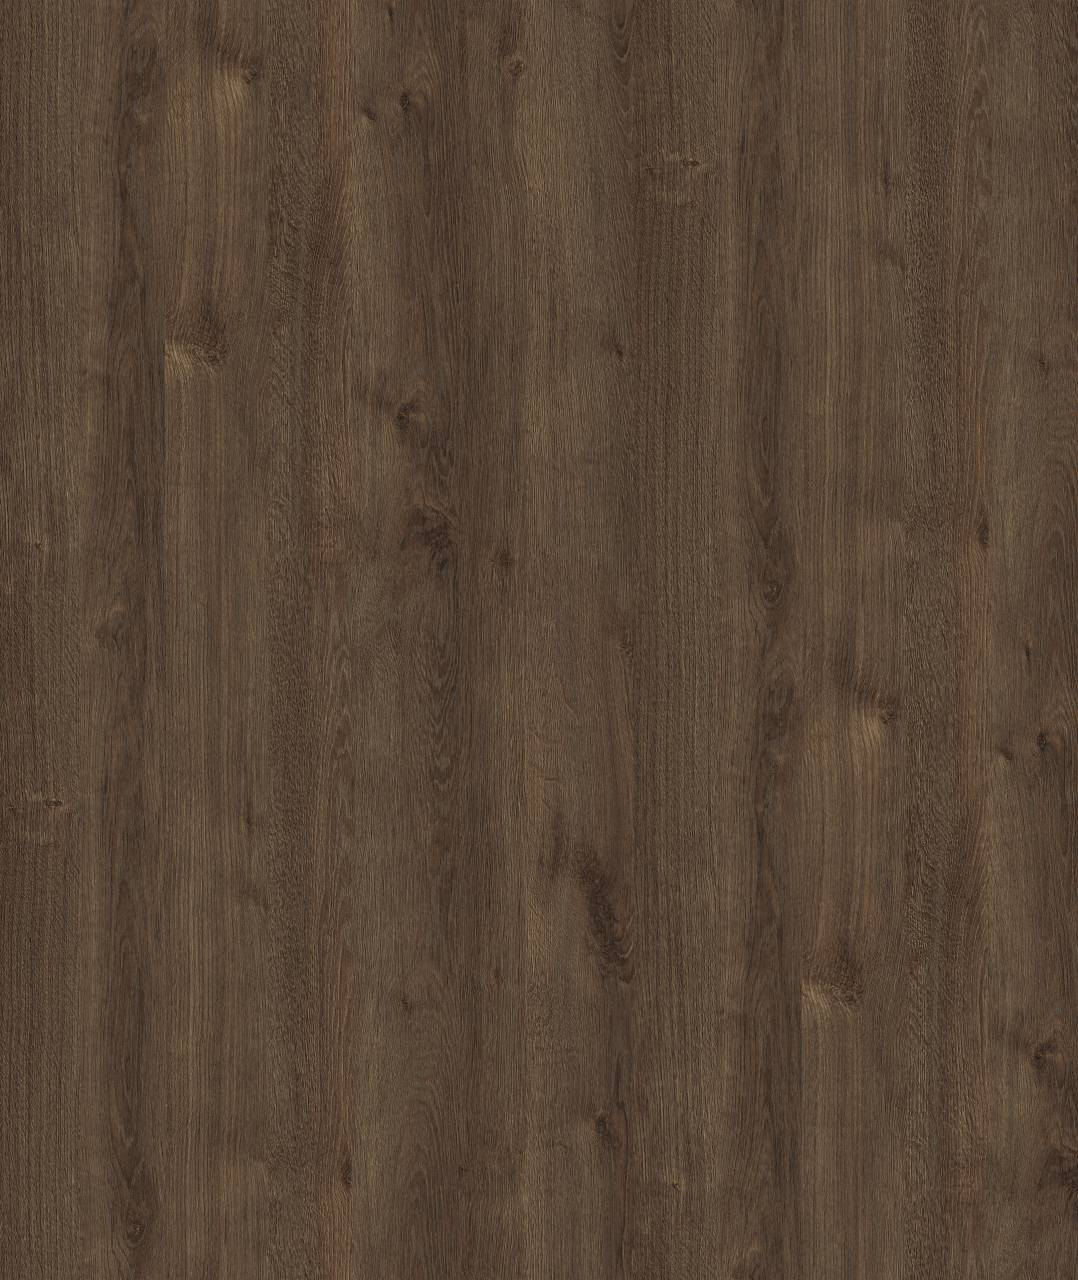 K090 Bronze Expressive Oak (MF PB sample)